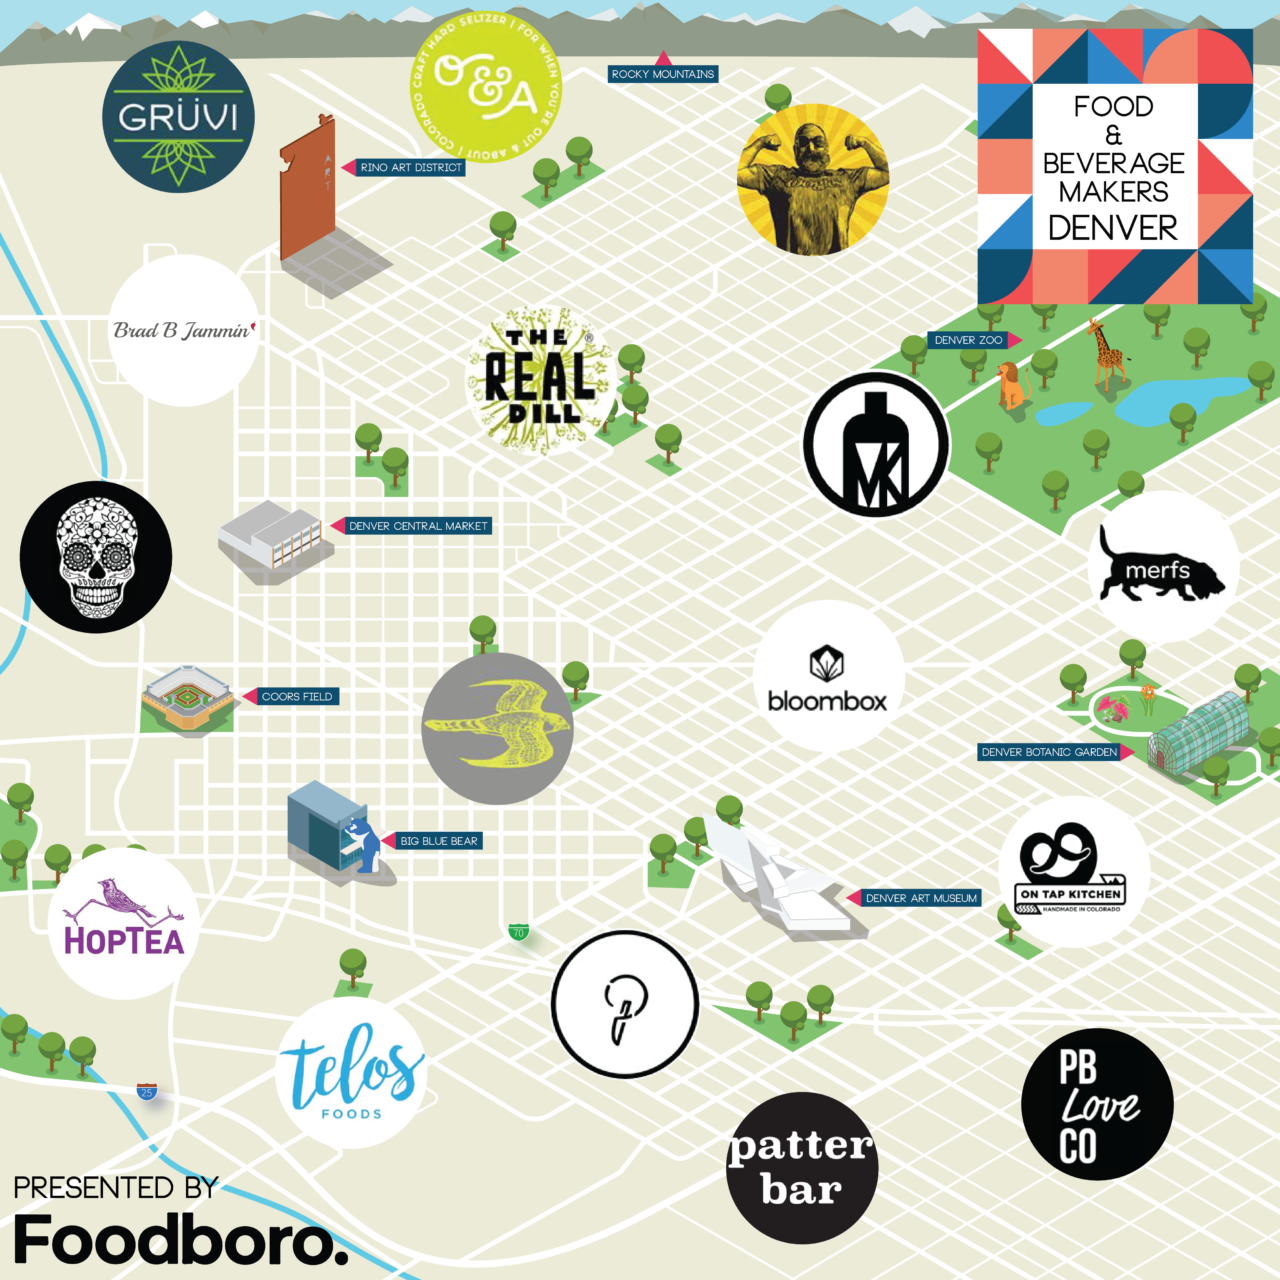 16 Must-Watch Food and Beverage Companies in Denver